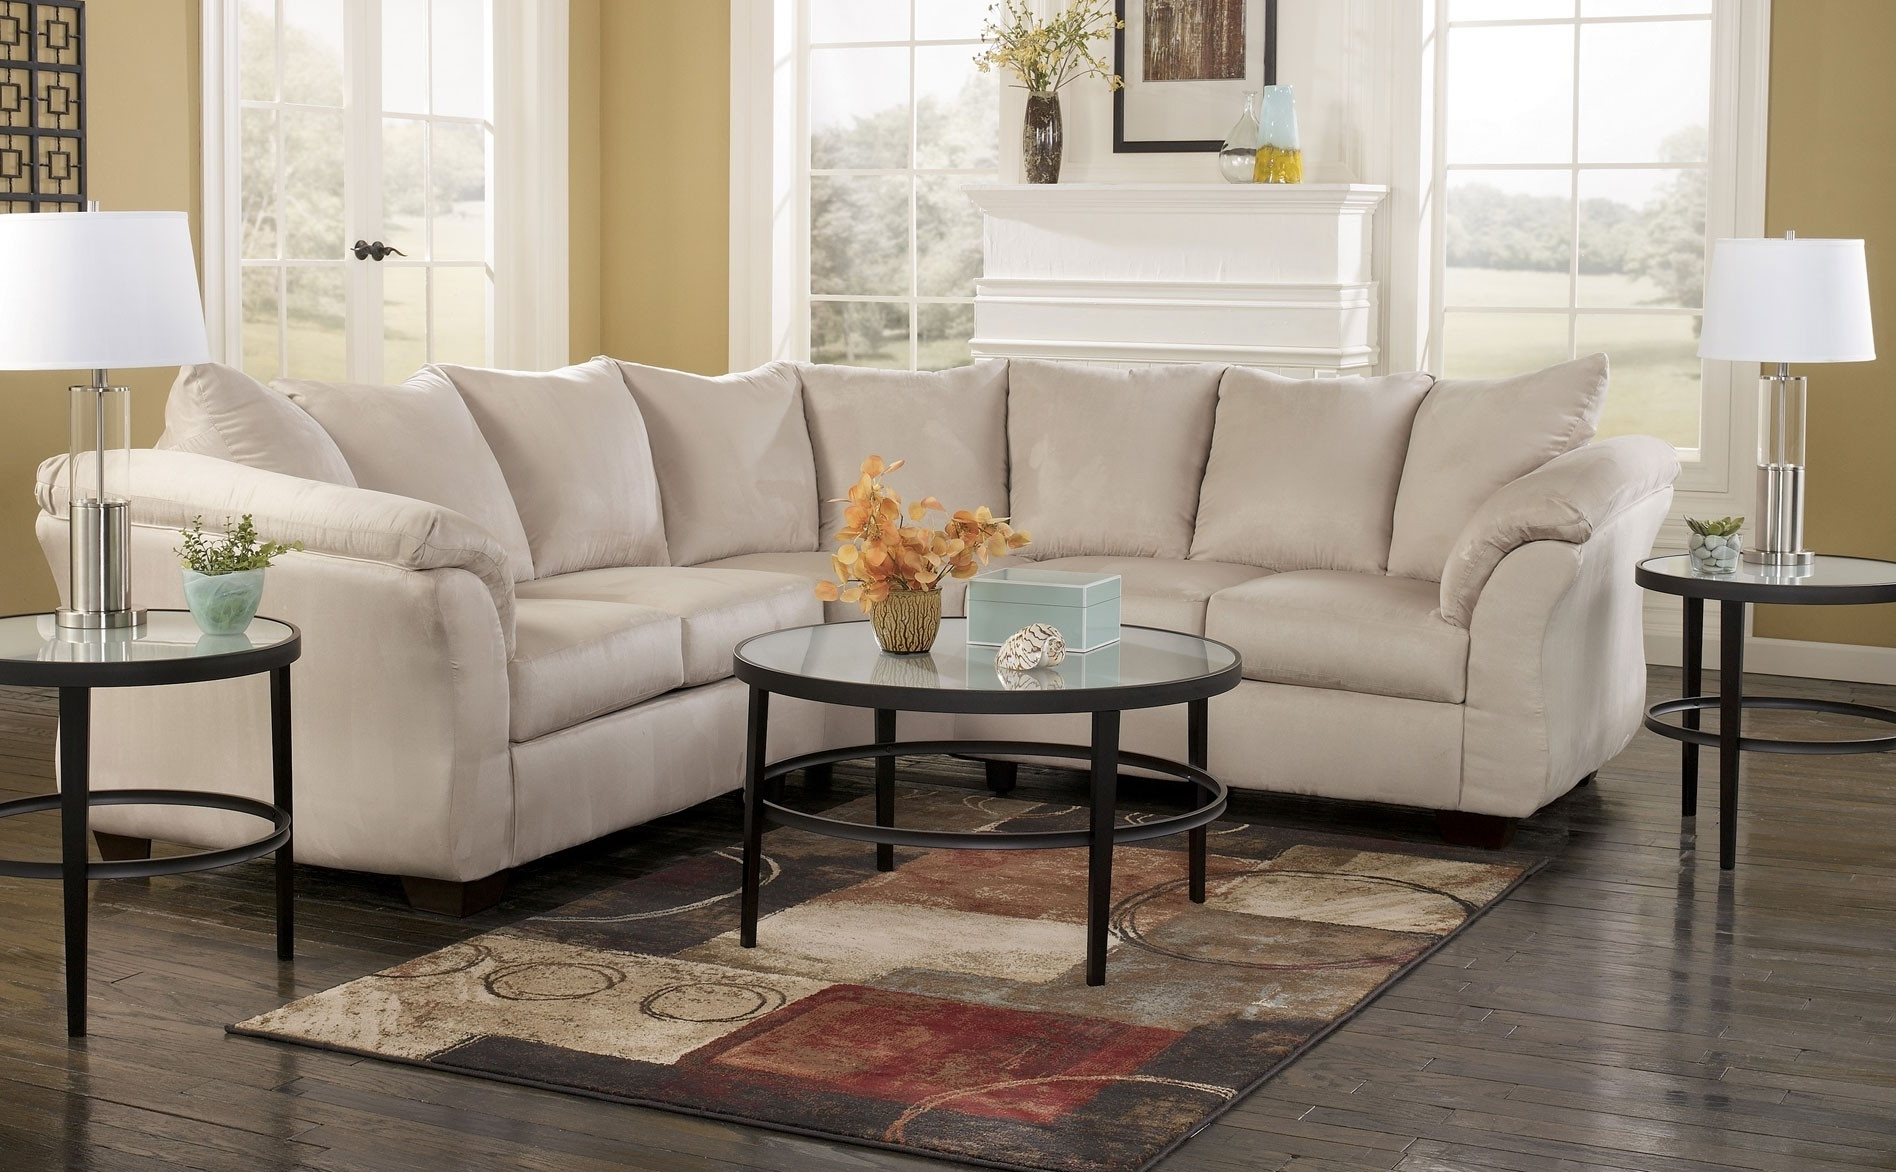 Furniture: Inspiring Living Room Decor With Cheap Sectional Sofas Regarding Widely Used Mathis Brothers Sectional Sofas (View 5 of 15)